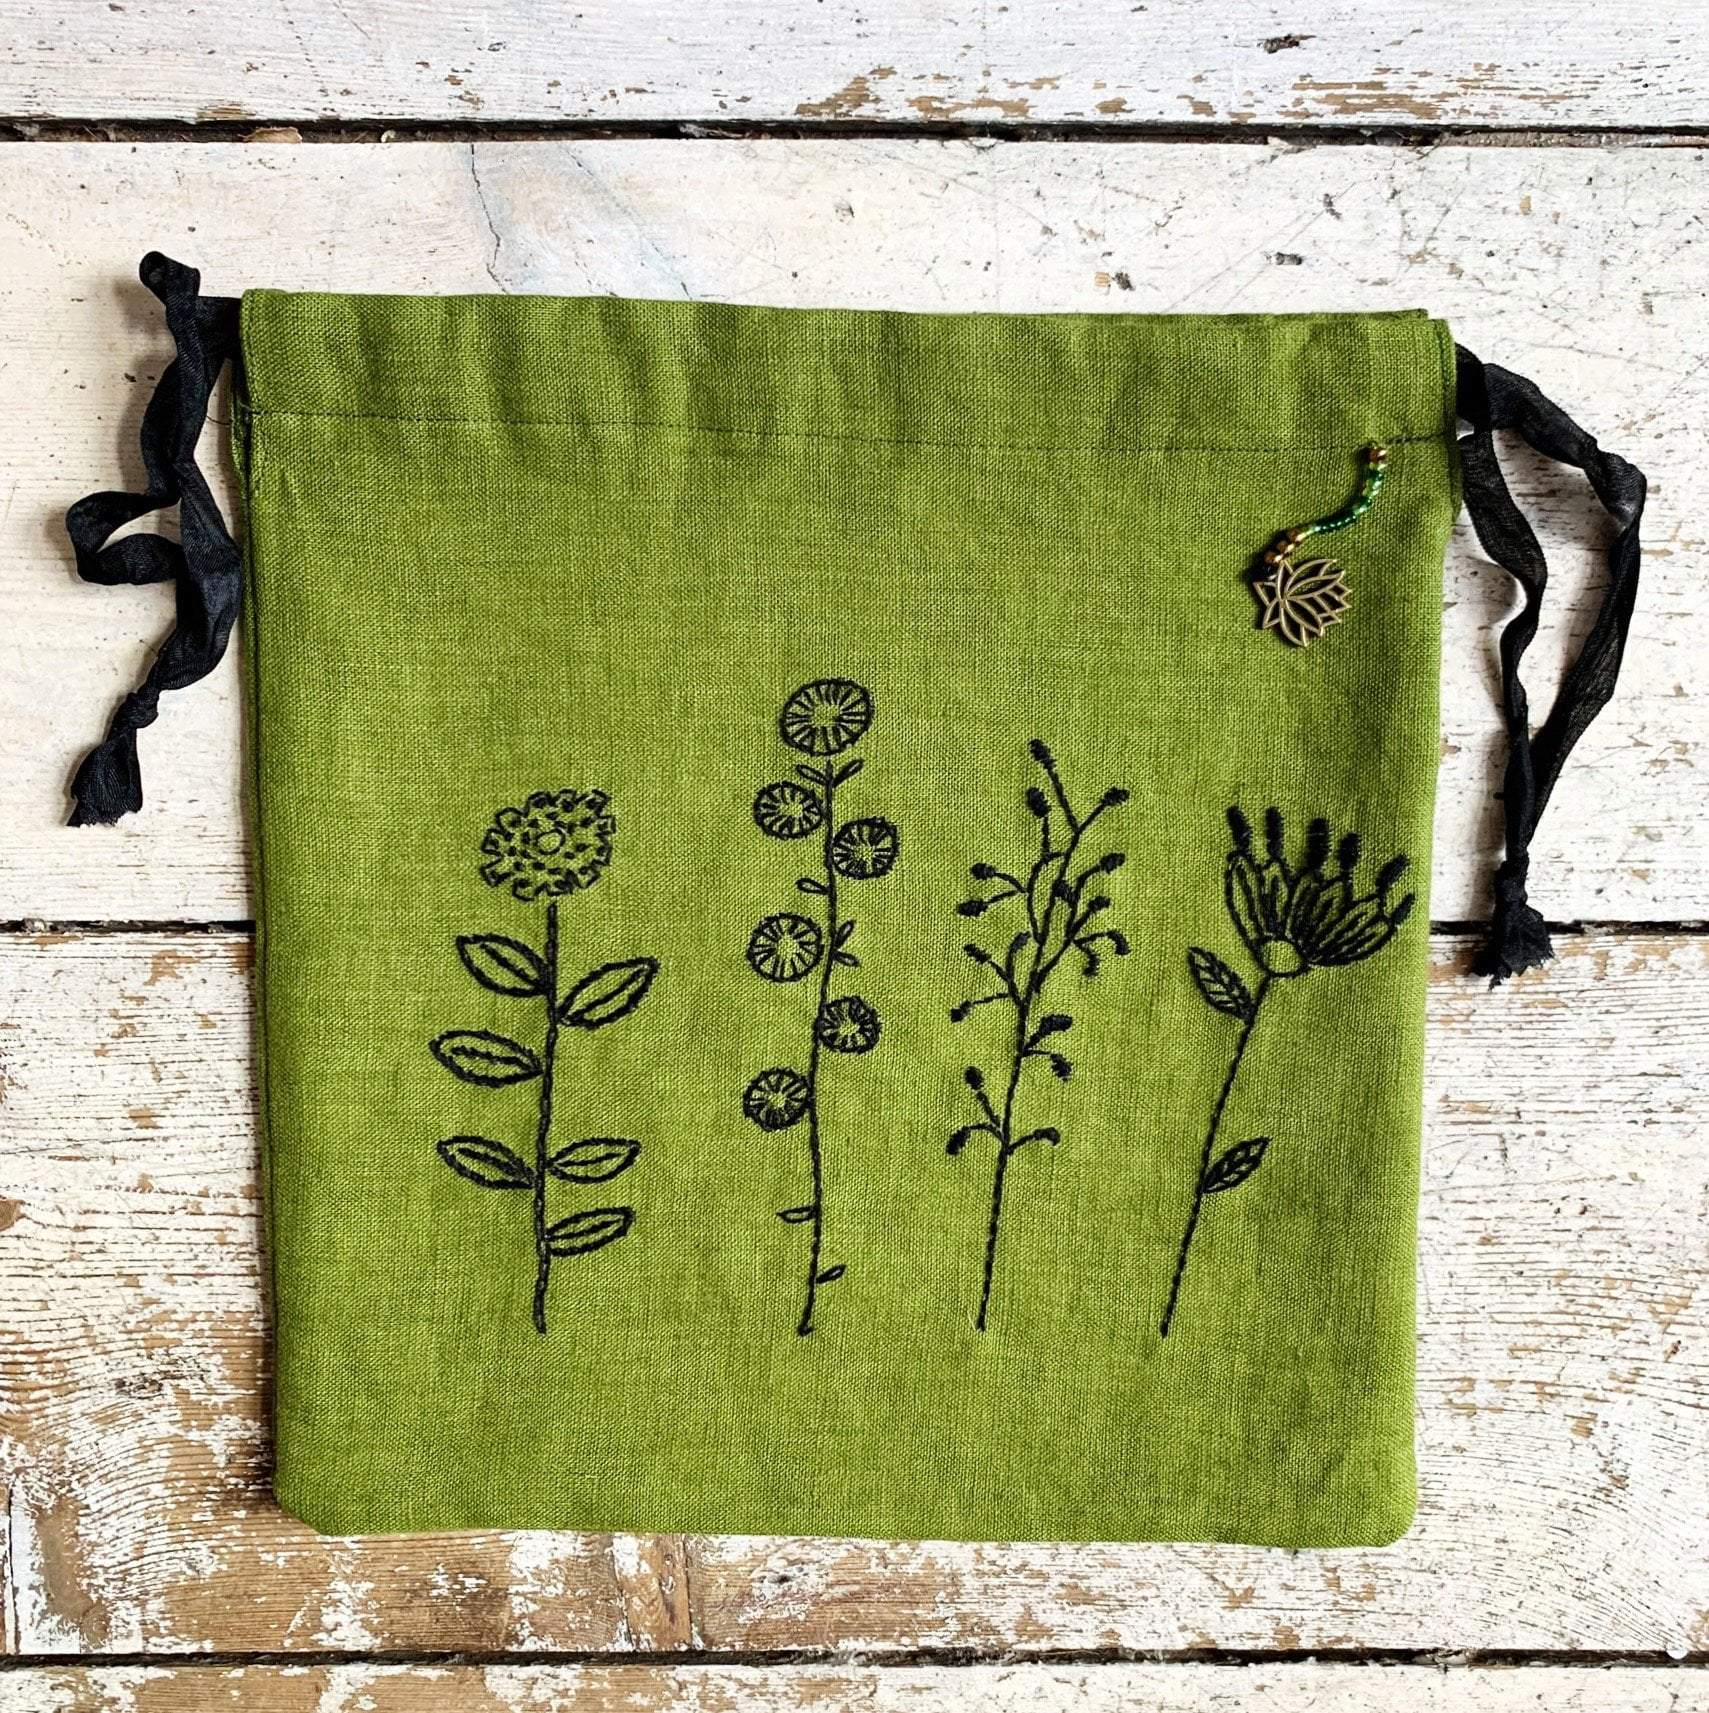 meinikigai Hand Embroidered Project Bags meinikigai Bags & Cases Flowers and Lime